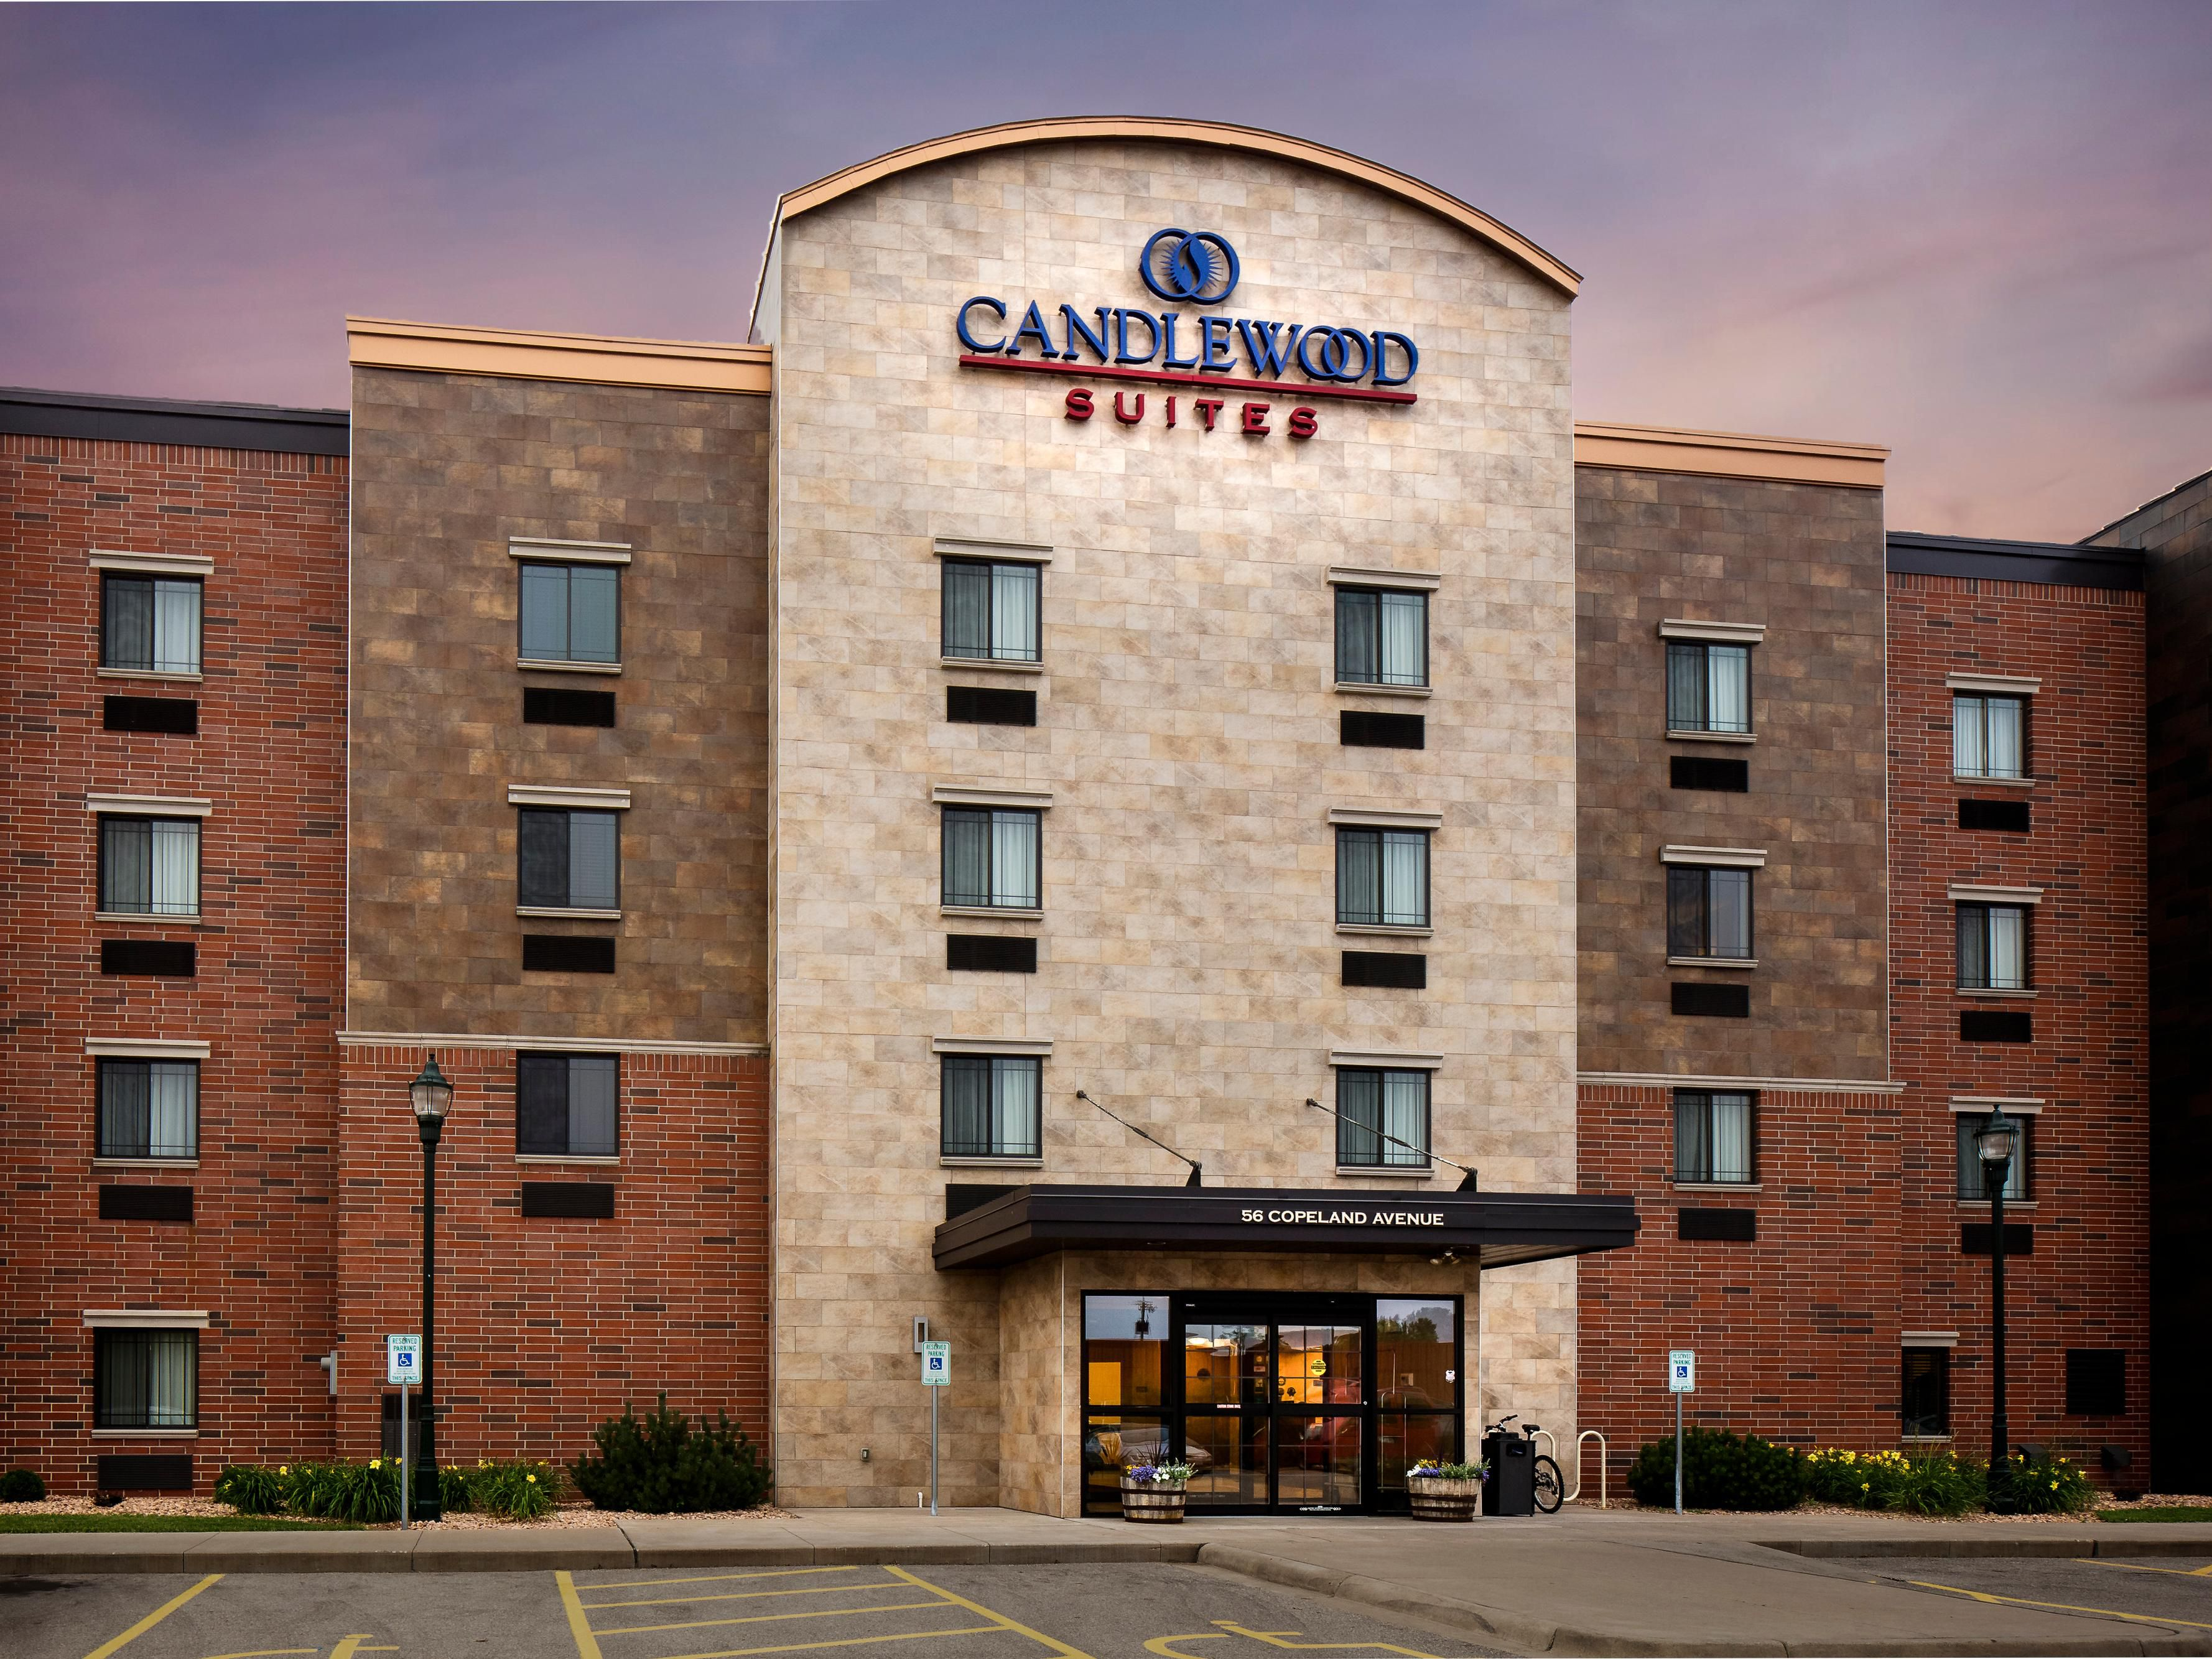 La Crosse Hotels Candlewood Suites Extended Stay Hotel In Wisconsin